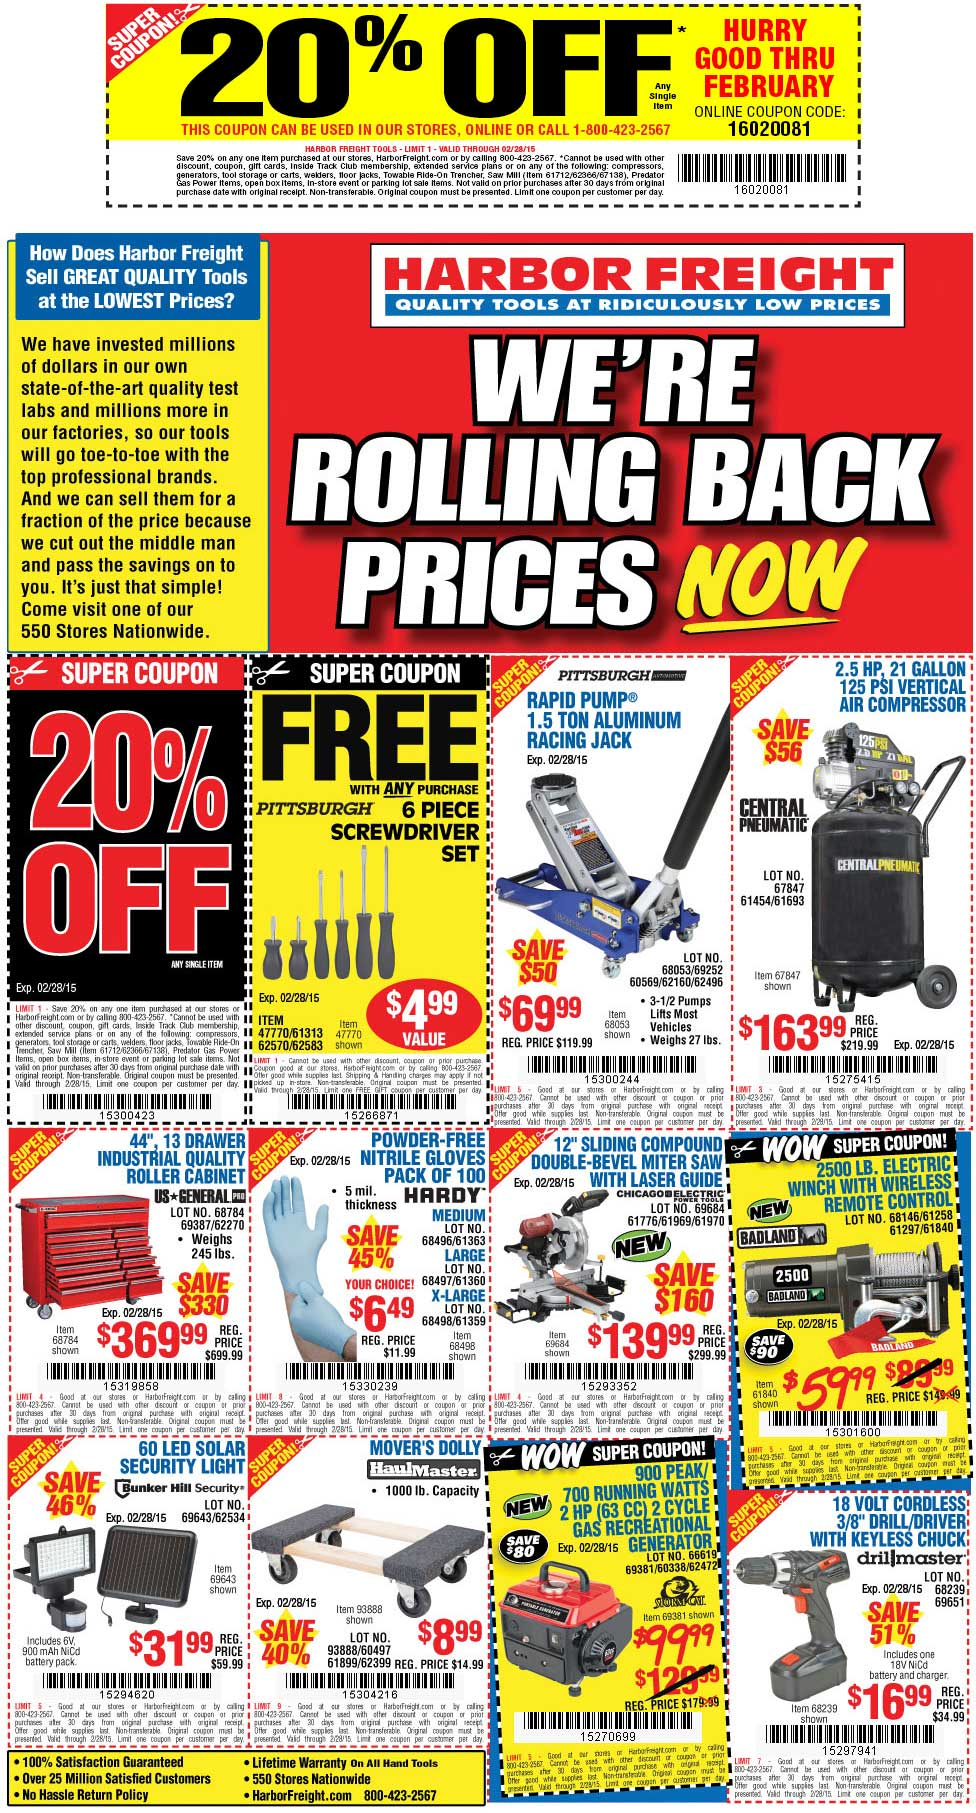 Harbor Freight Coupon June 2017 20% off + various others at Harbor Freight Tools, or online via promo code 16020081